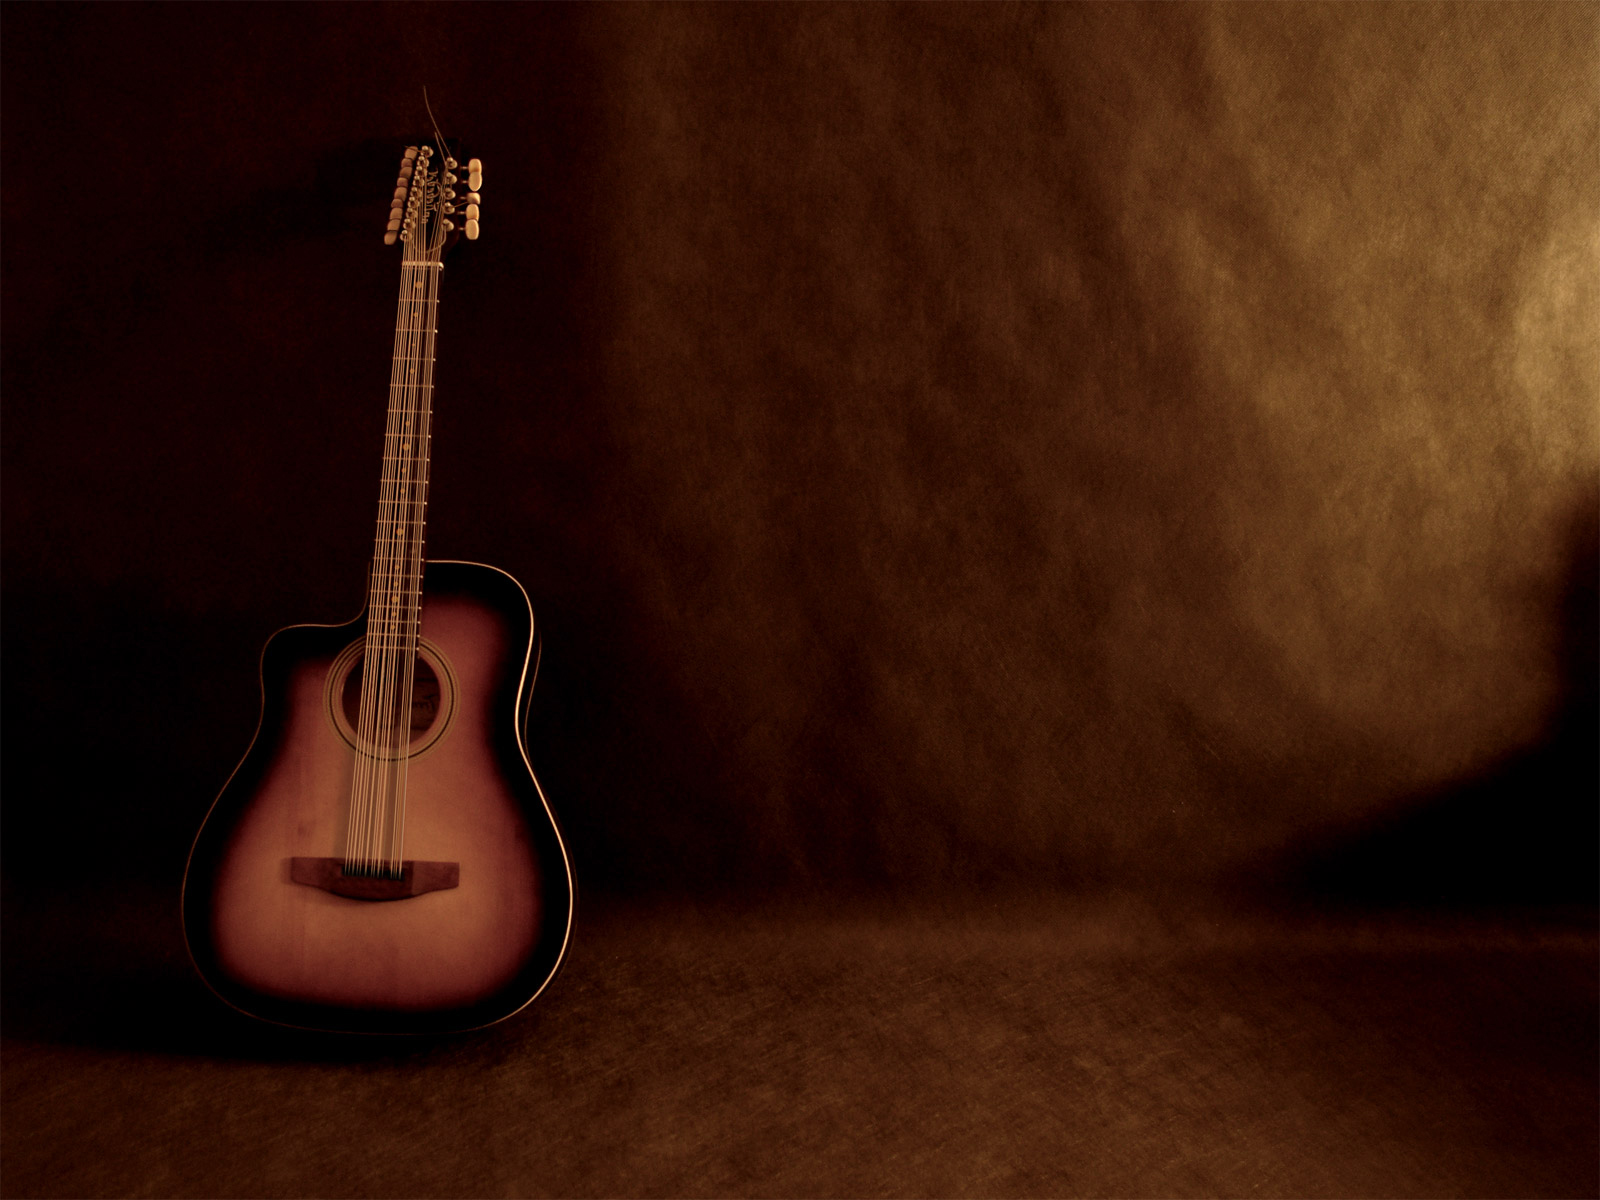 Free Download The Gallery For Gt Acoustic Guitar Wallpaper Hd 1600x1200 For Your Desktop Mobile Tablet Explore 76 Acoustic Guitar Wallpaper Fender Wallpaper Gibson Wallpaper Guitar Wallpapers For Desktop